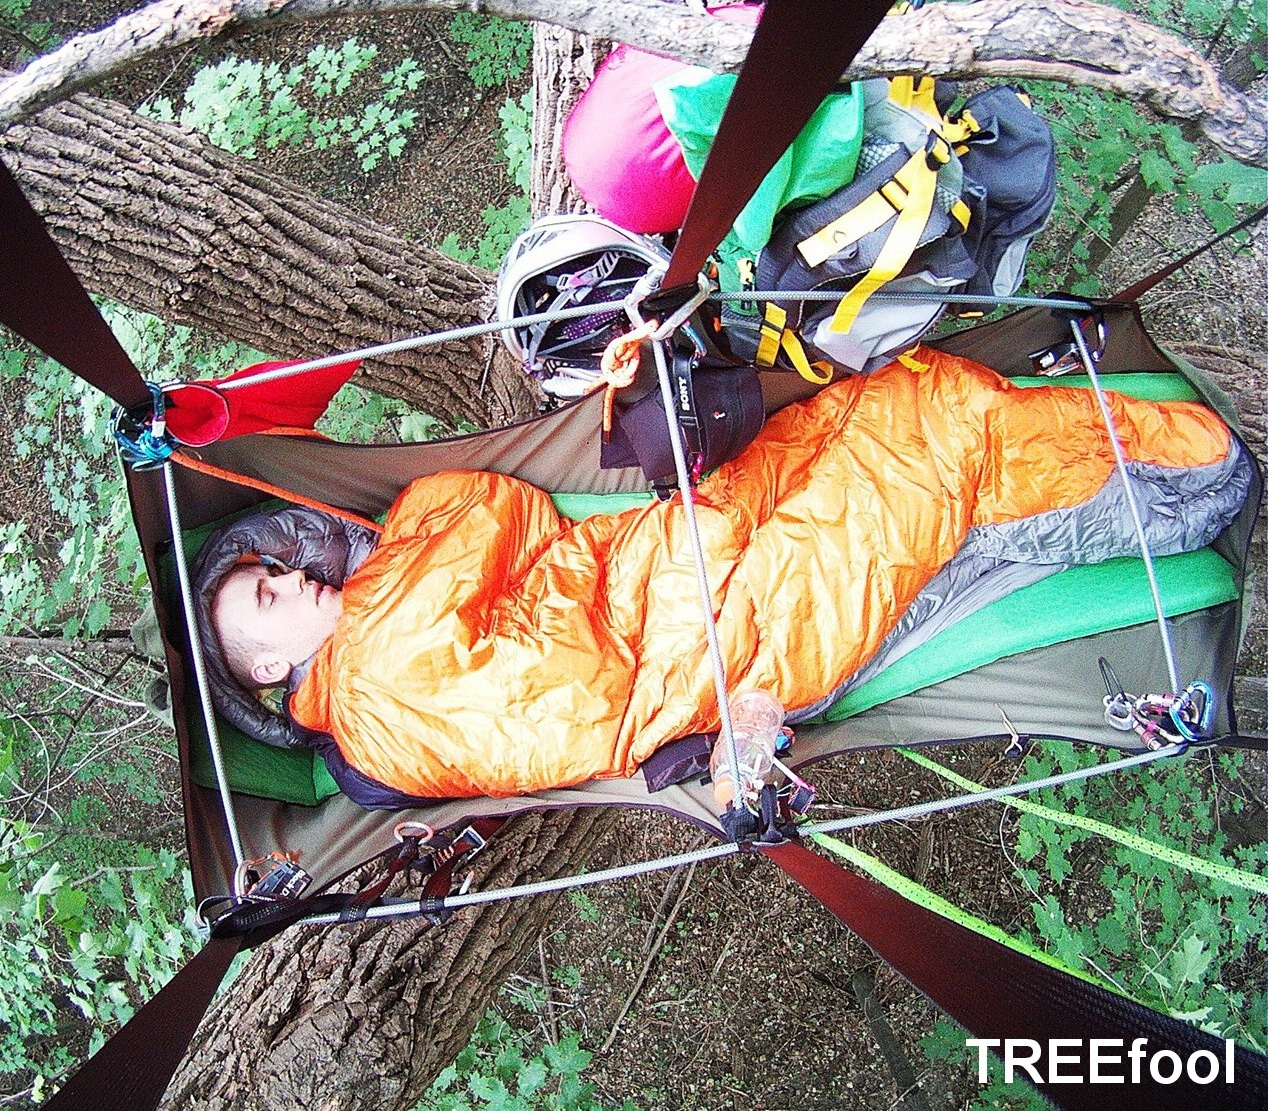 two tree home bison magazine xl one sleeping sun living outdoor hanging chair bag favorites for hammock sunset